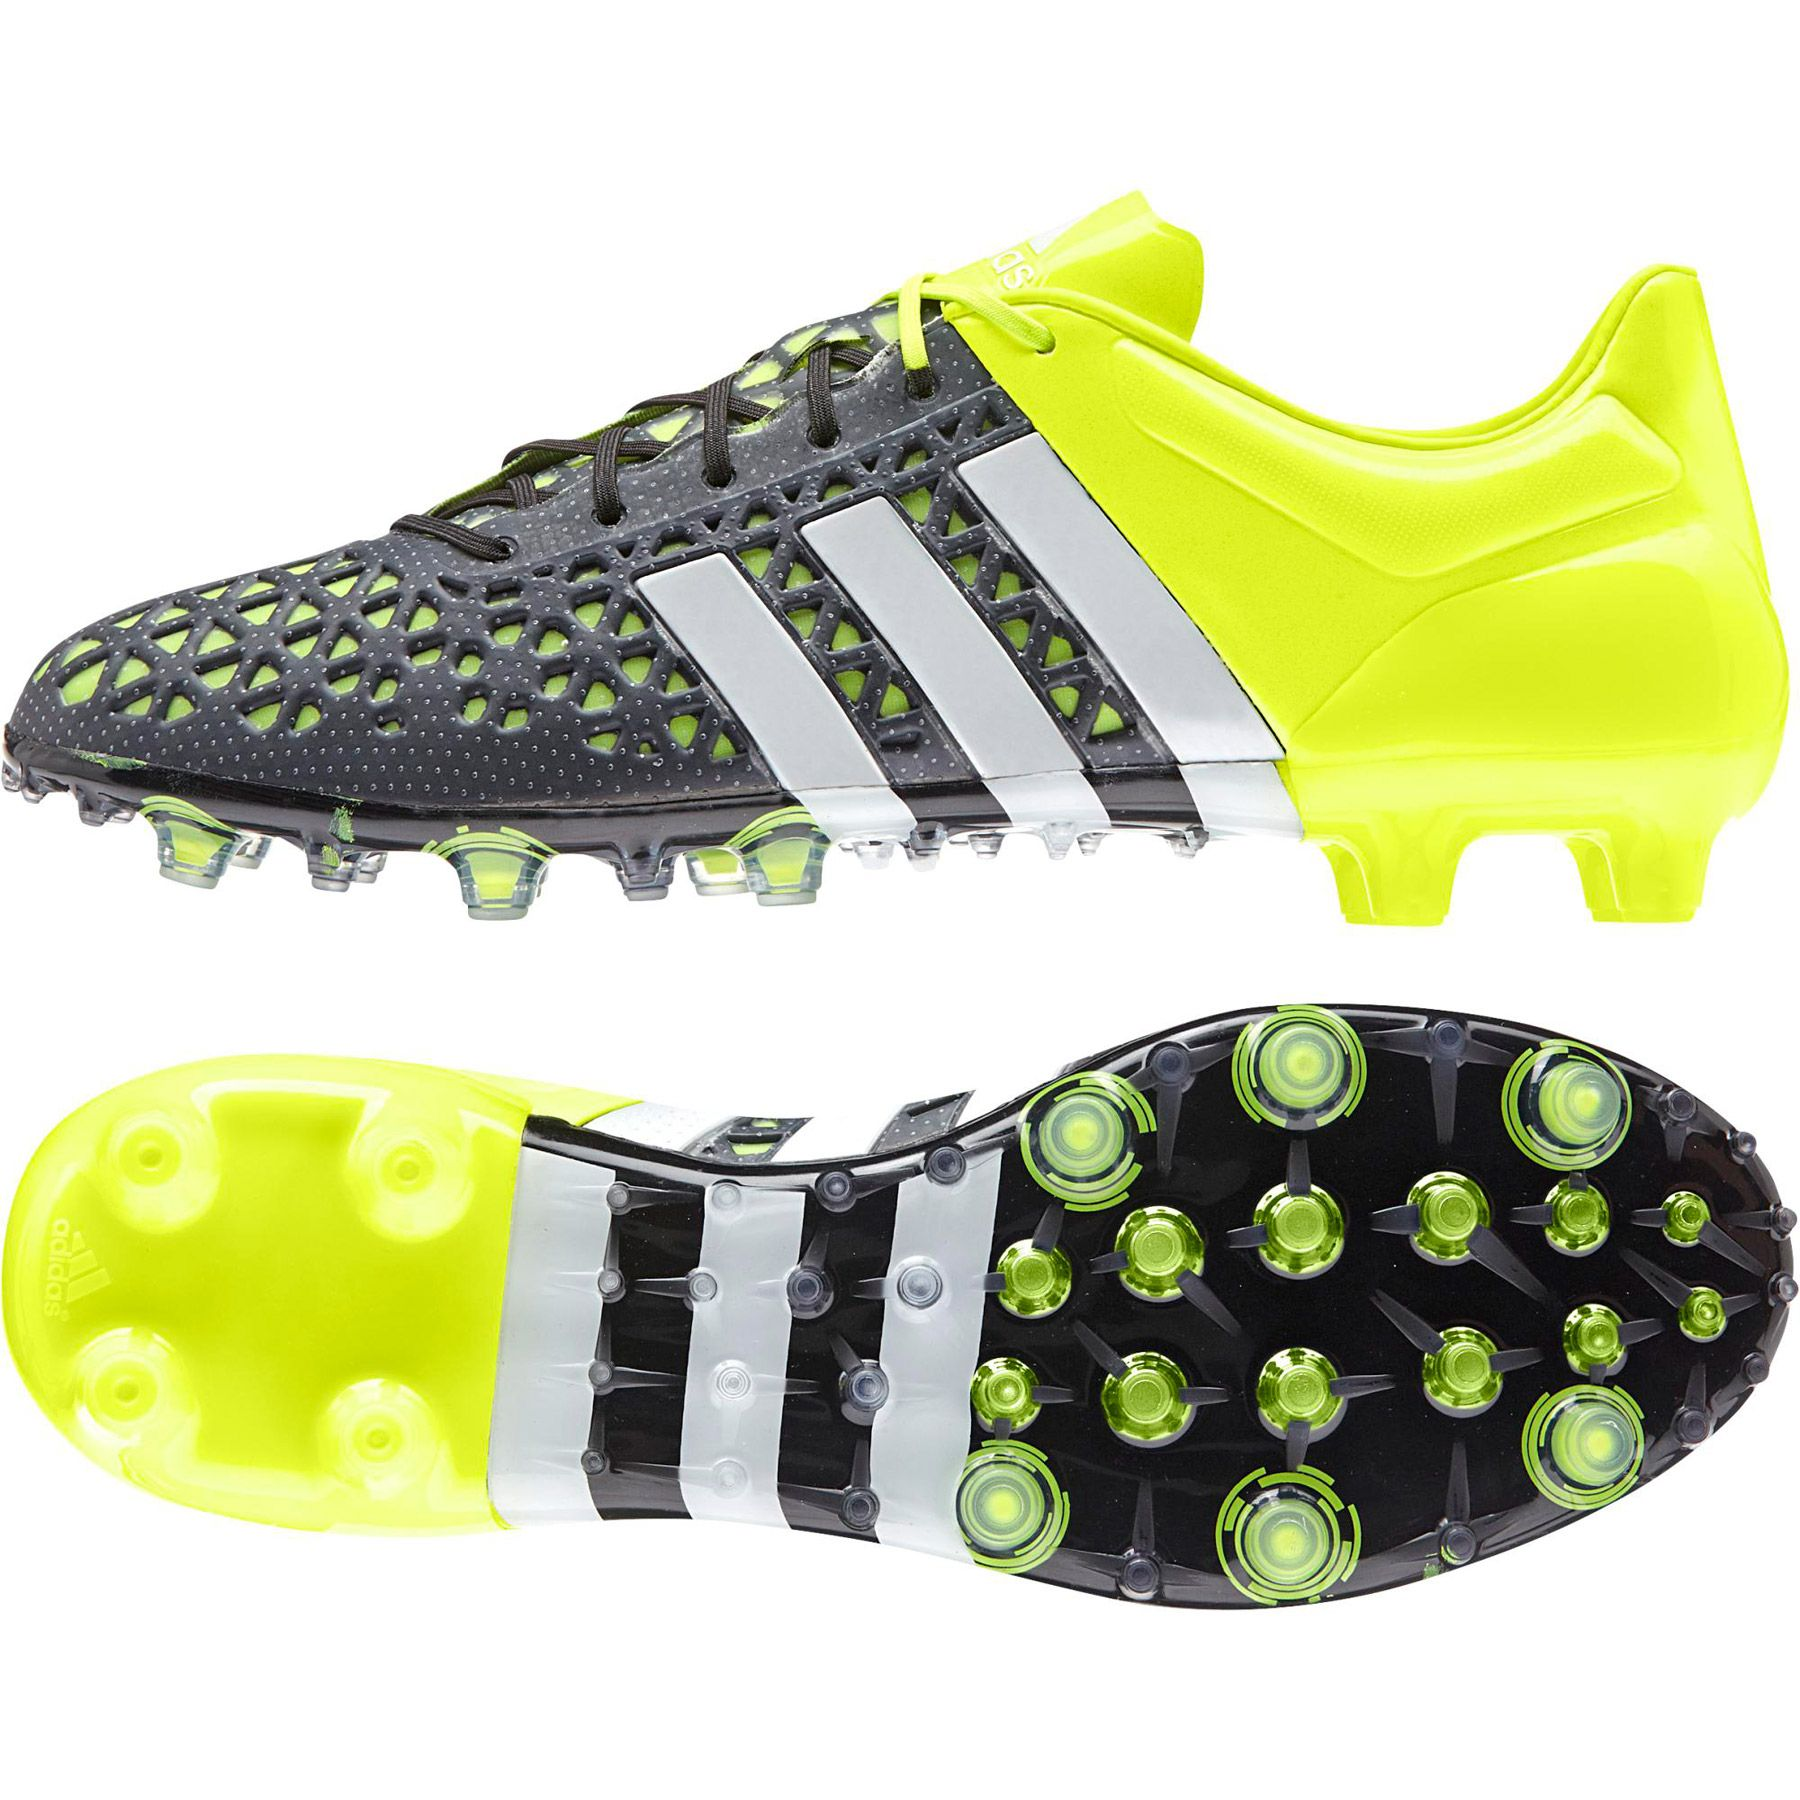 buy popular 02abe a3908 manchester adidas f50 adizero ii prime fg lysegrøn sort hvidadidas ultra  boost st  adidas ace 15.1 firm ground football boots yellow available at  kitbag.